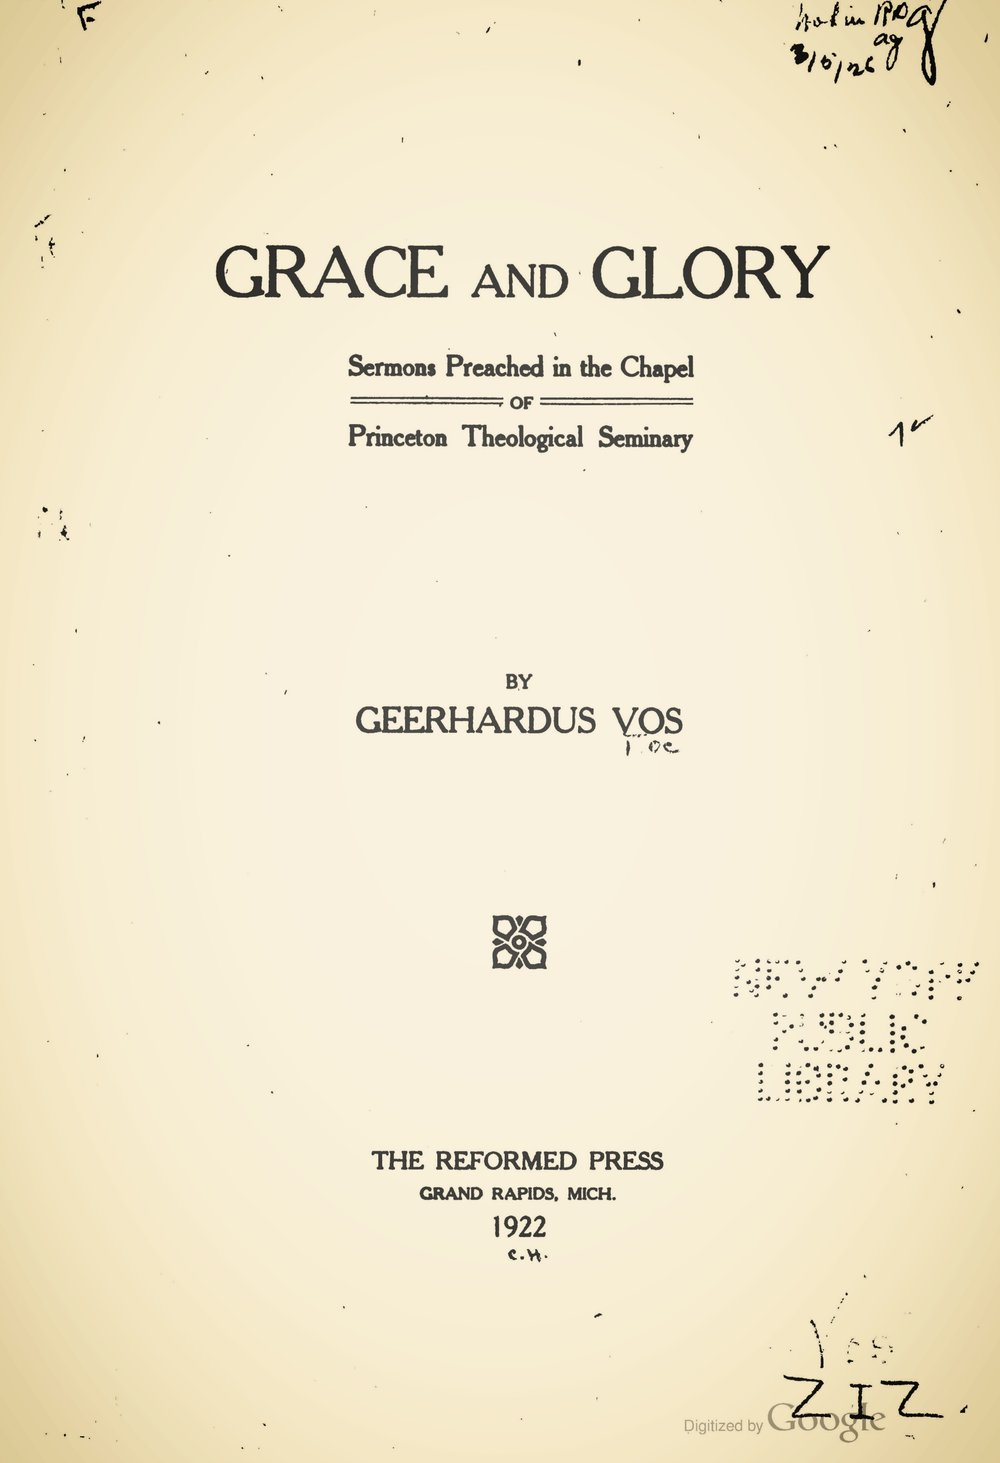 Vos, Geerhardus, Grace and Glory Title Page.jpg